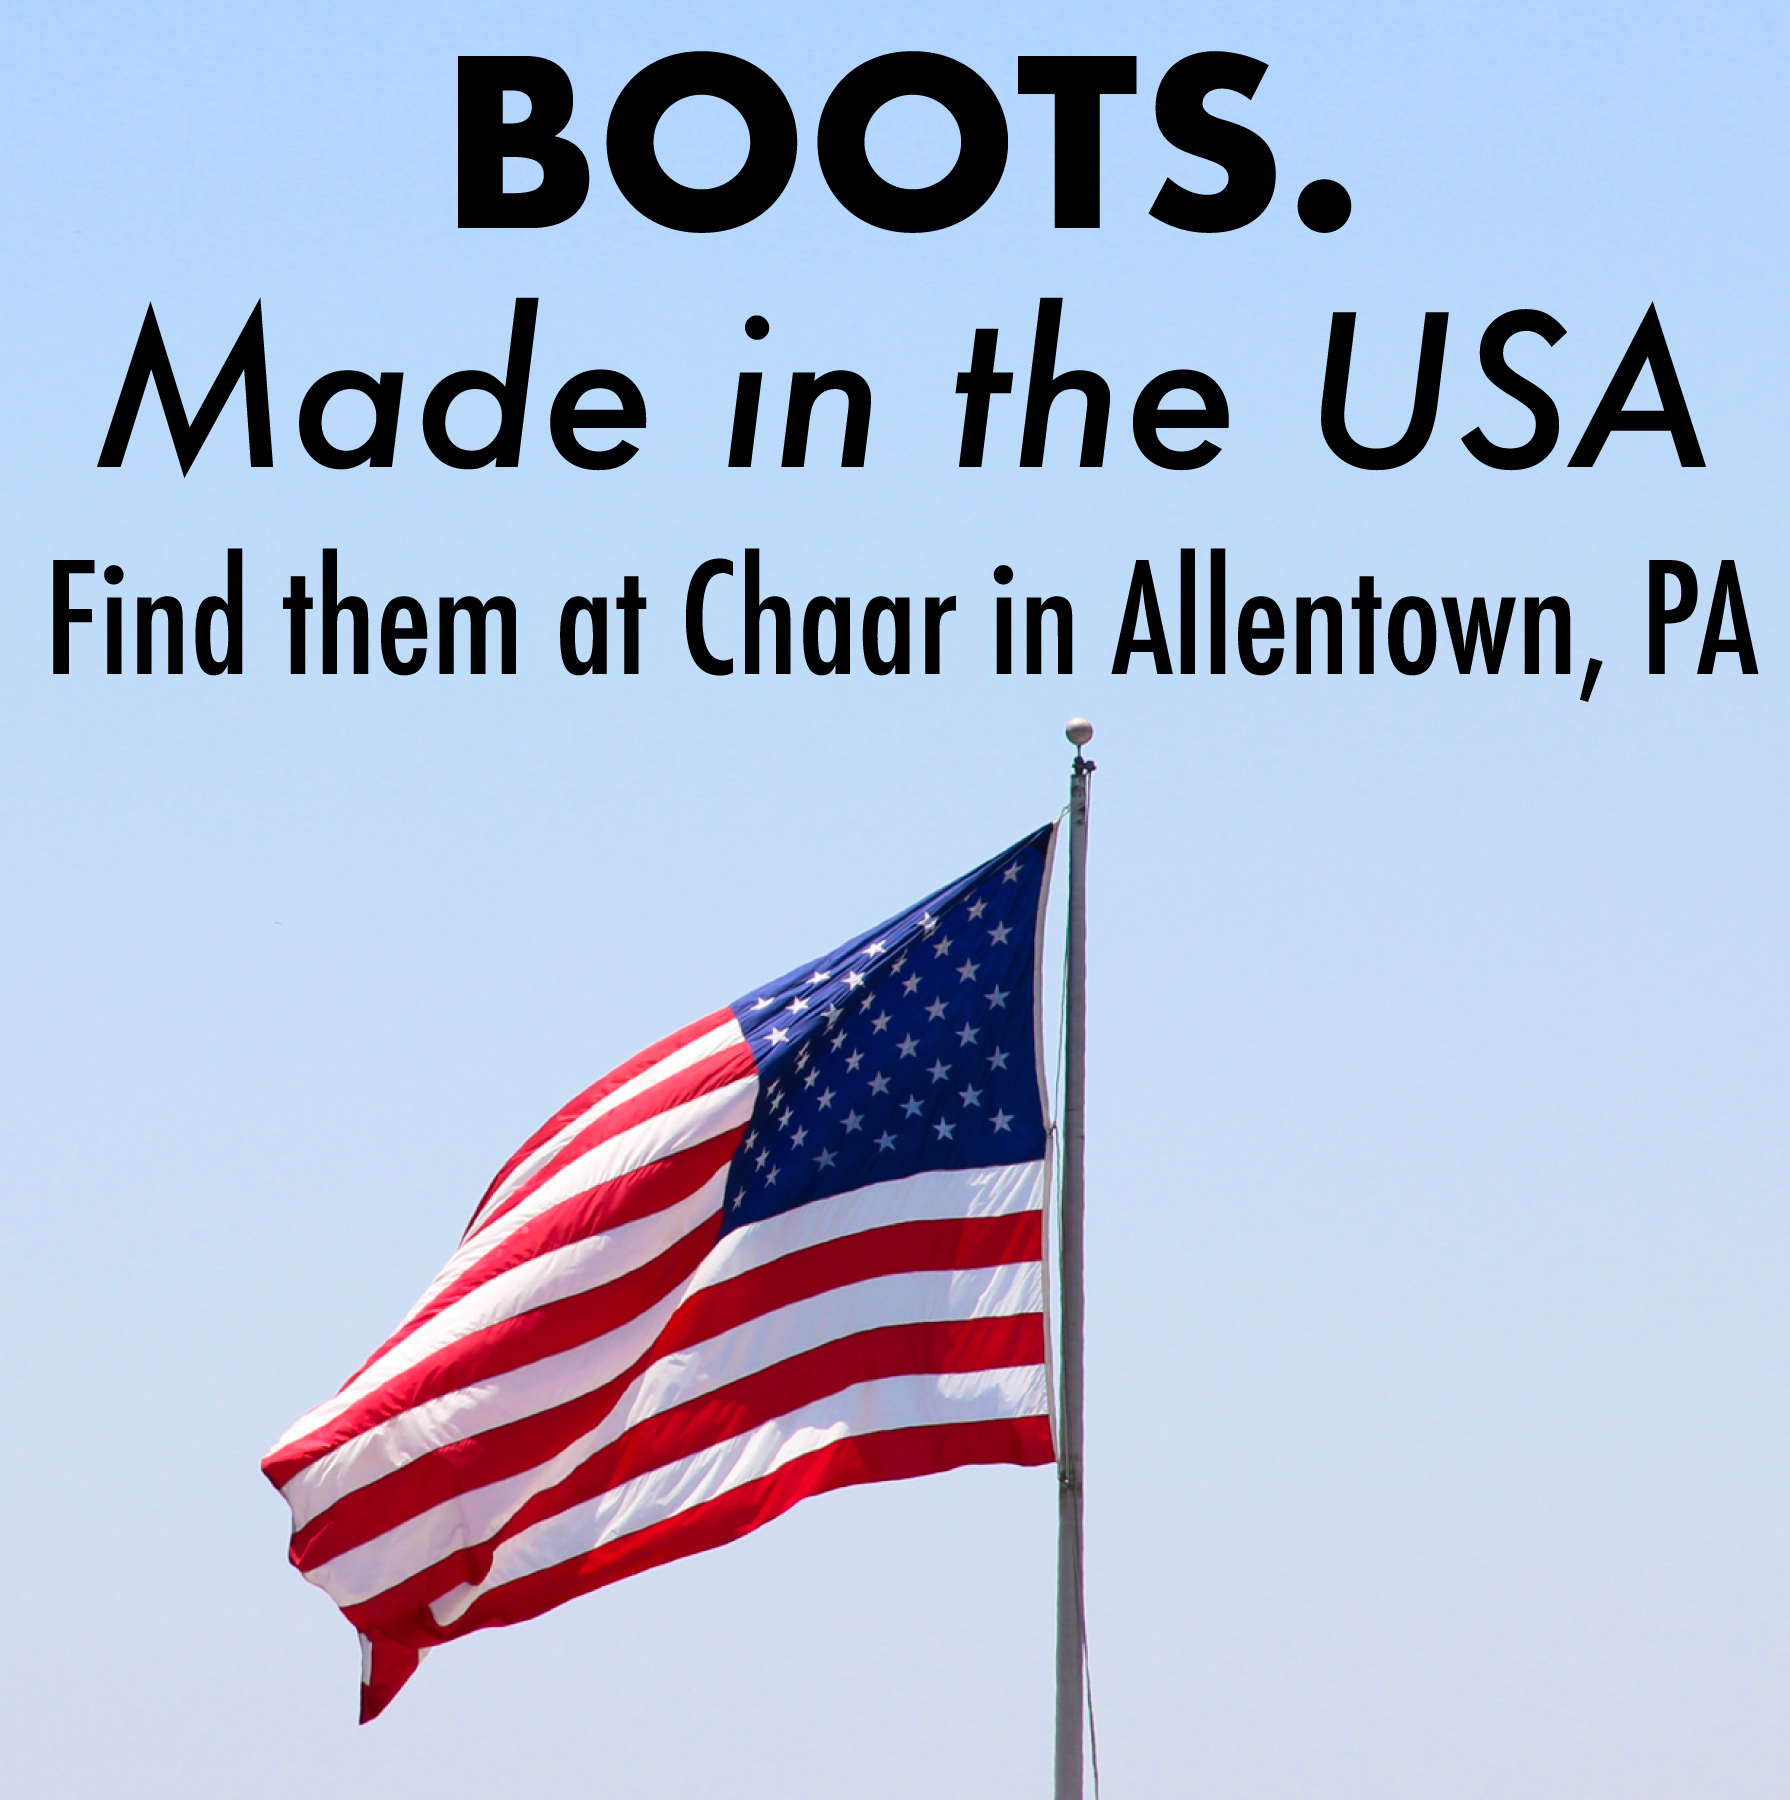 boots-made-in-the-usa.jpg